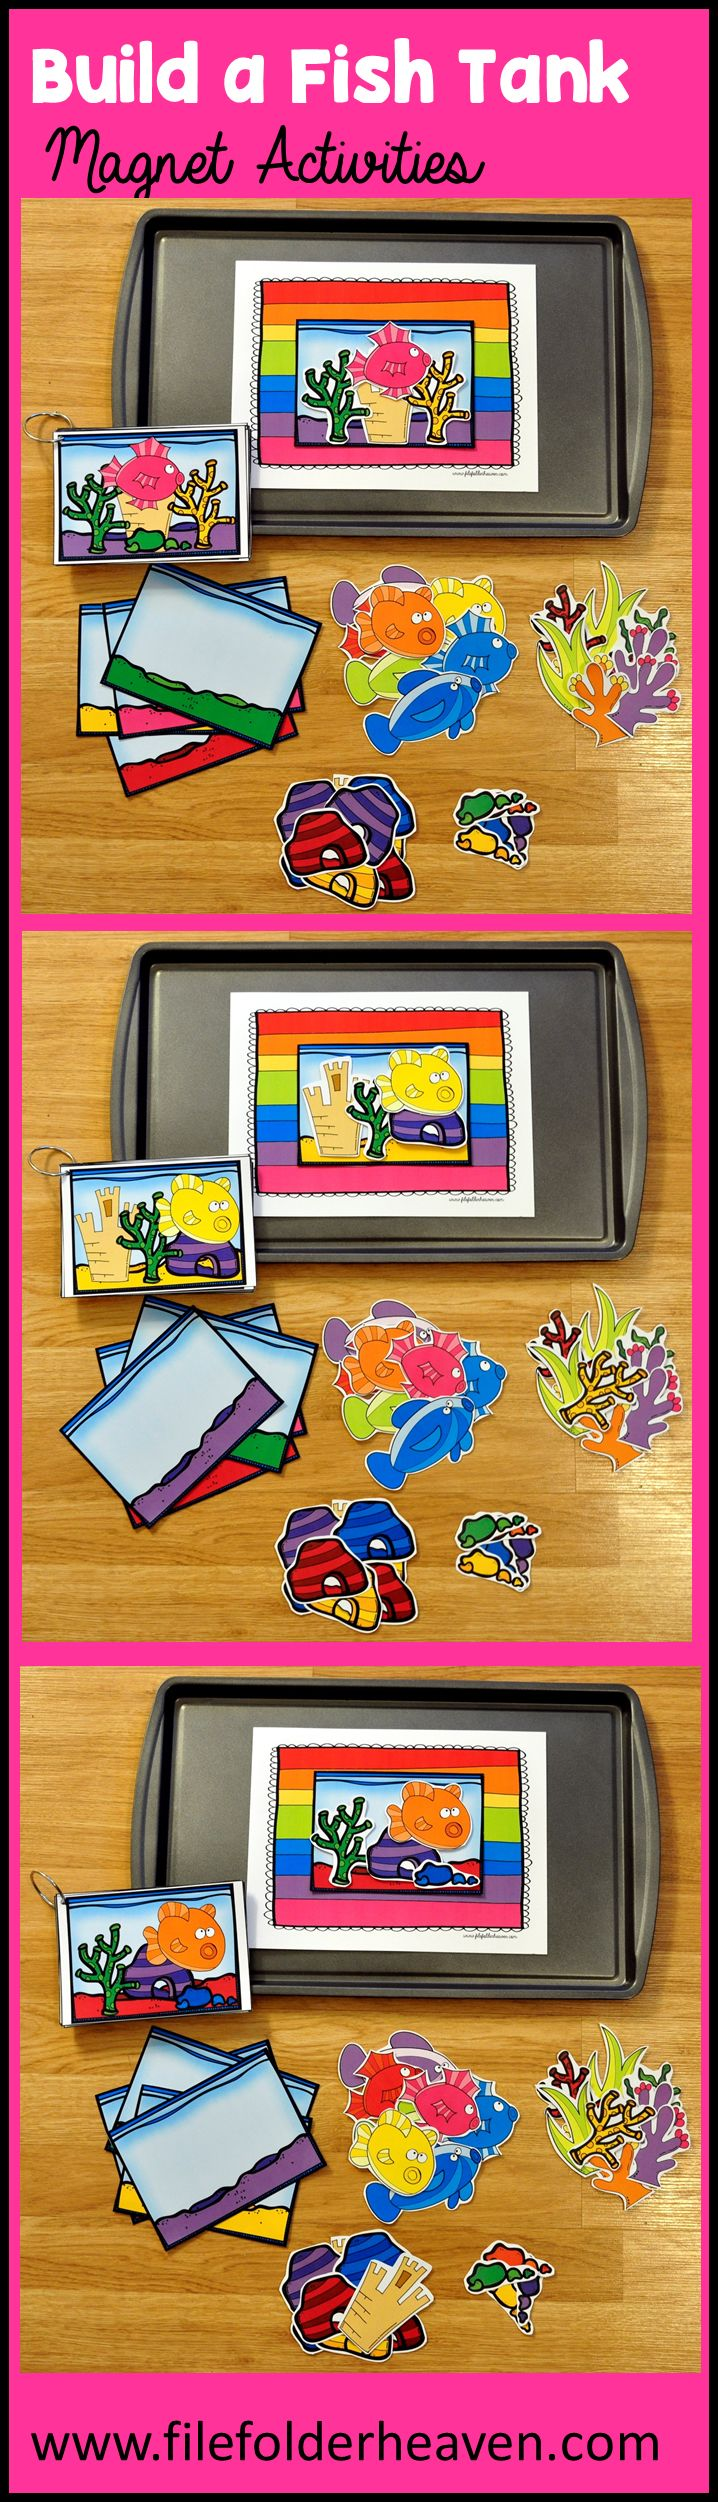 "These Build a Fish Tank Center Activities can be set up as cookie sheet activities, a magnet center or completed as cut and glue activities. This activity includes: 1 background, 14 build a fish tank example cards, and a big set of ""build a fish tank"" building pieces for creative building (all in color).  In this activity, students work on visual discrimination skills, recognizing same and different, and replicating a model."